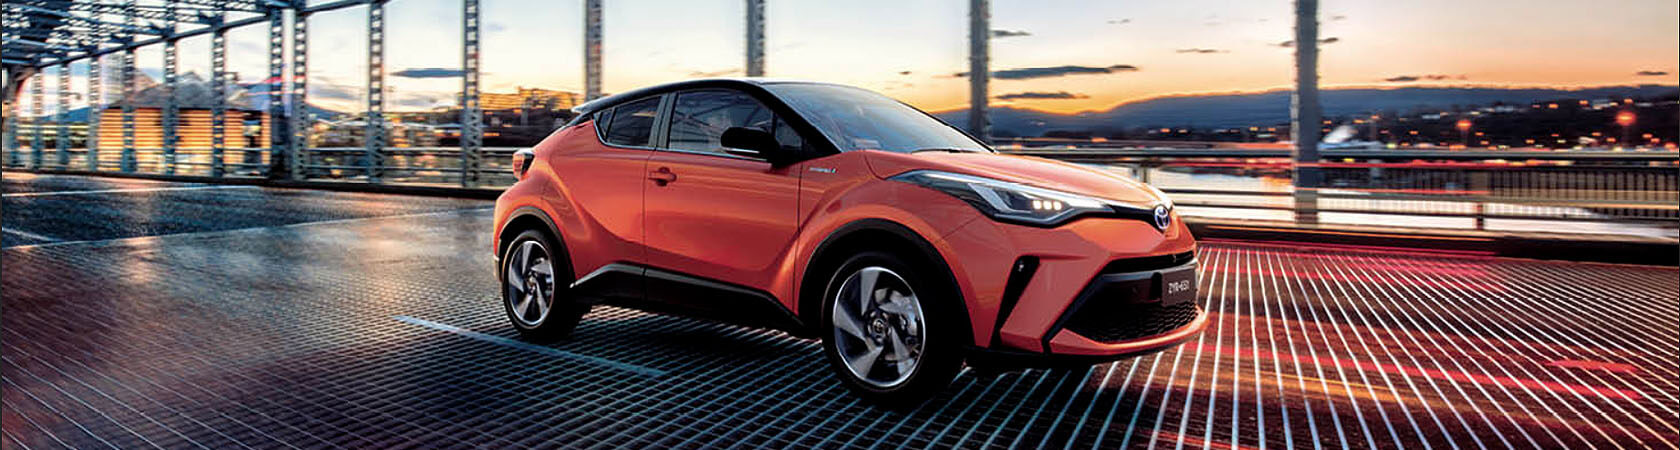 Jacob Toyota C-HR